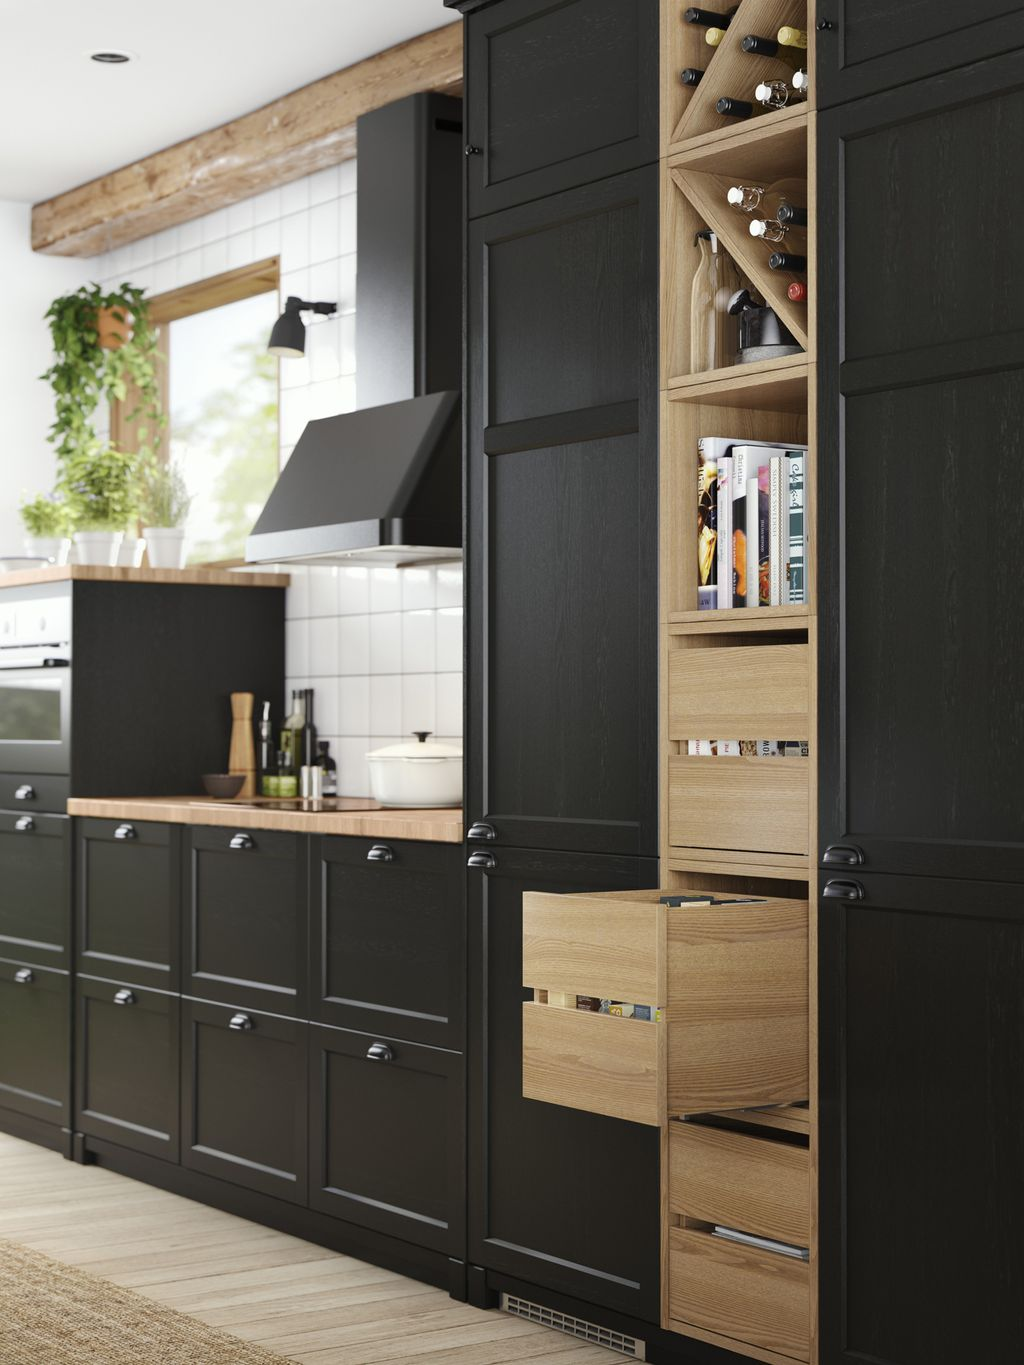 Ikea Le Nouveau Design Cuisines 20182019 PLANETE DECO A Homes World